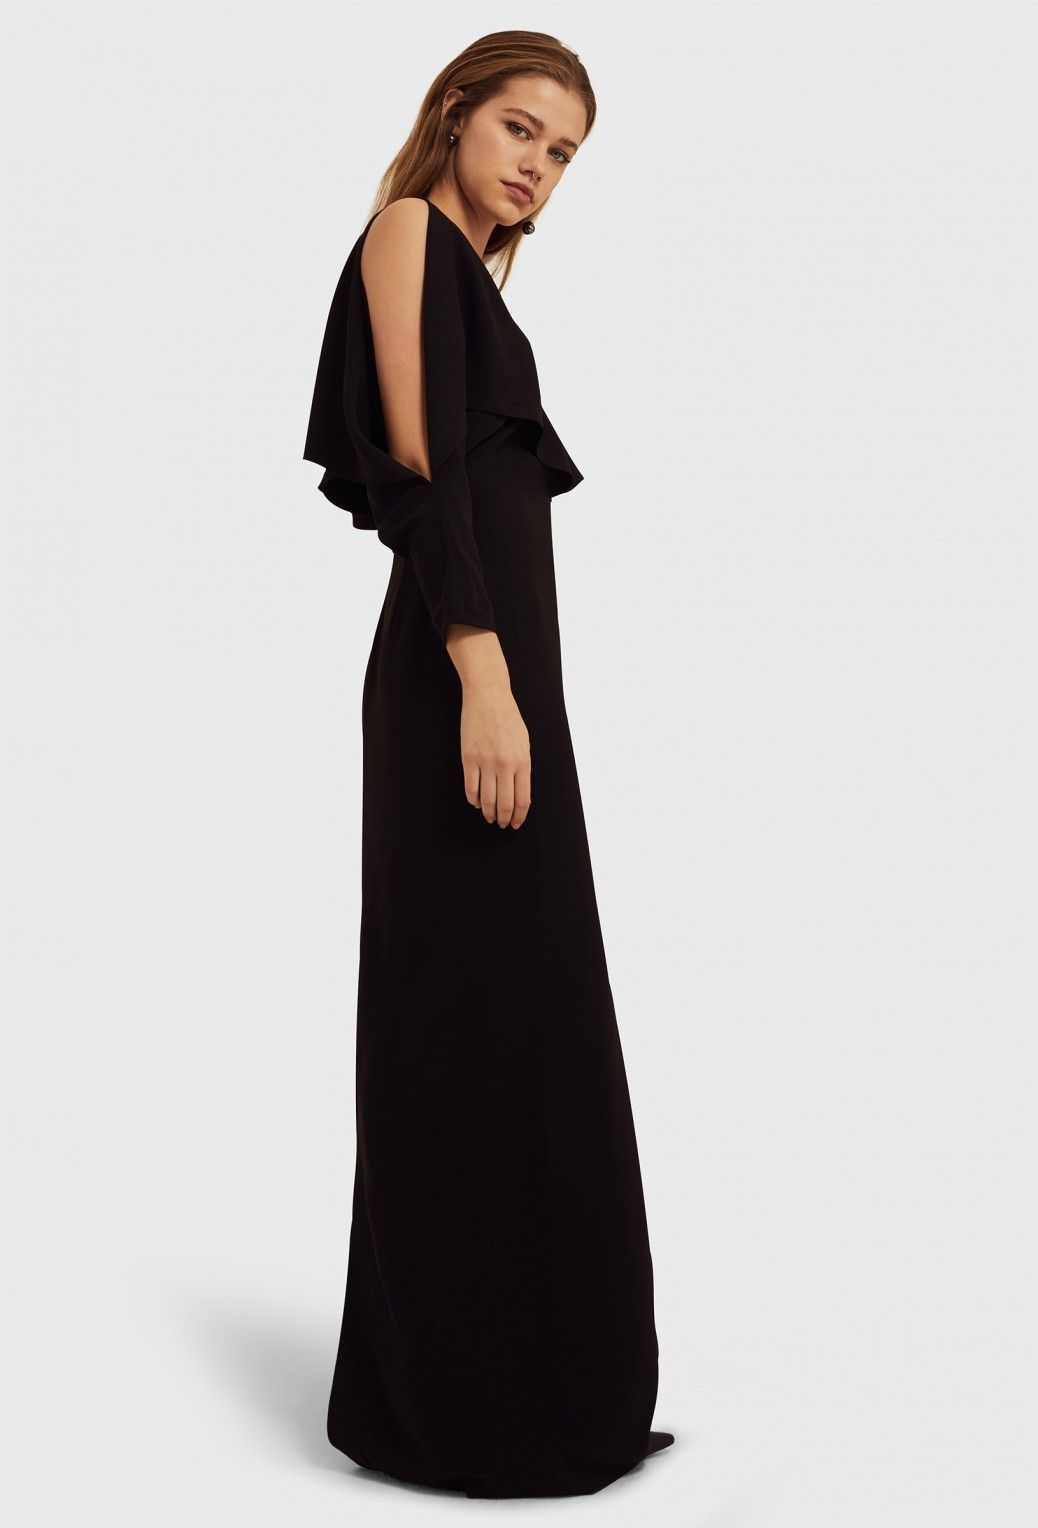 abe0150c3c Image 1 of AQ AQ Larissa Deep Plunge Maxi Dress with Exposed Shoulders and  Frill Detail · Black